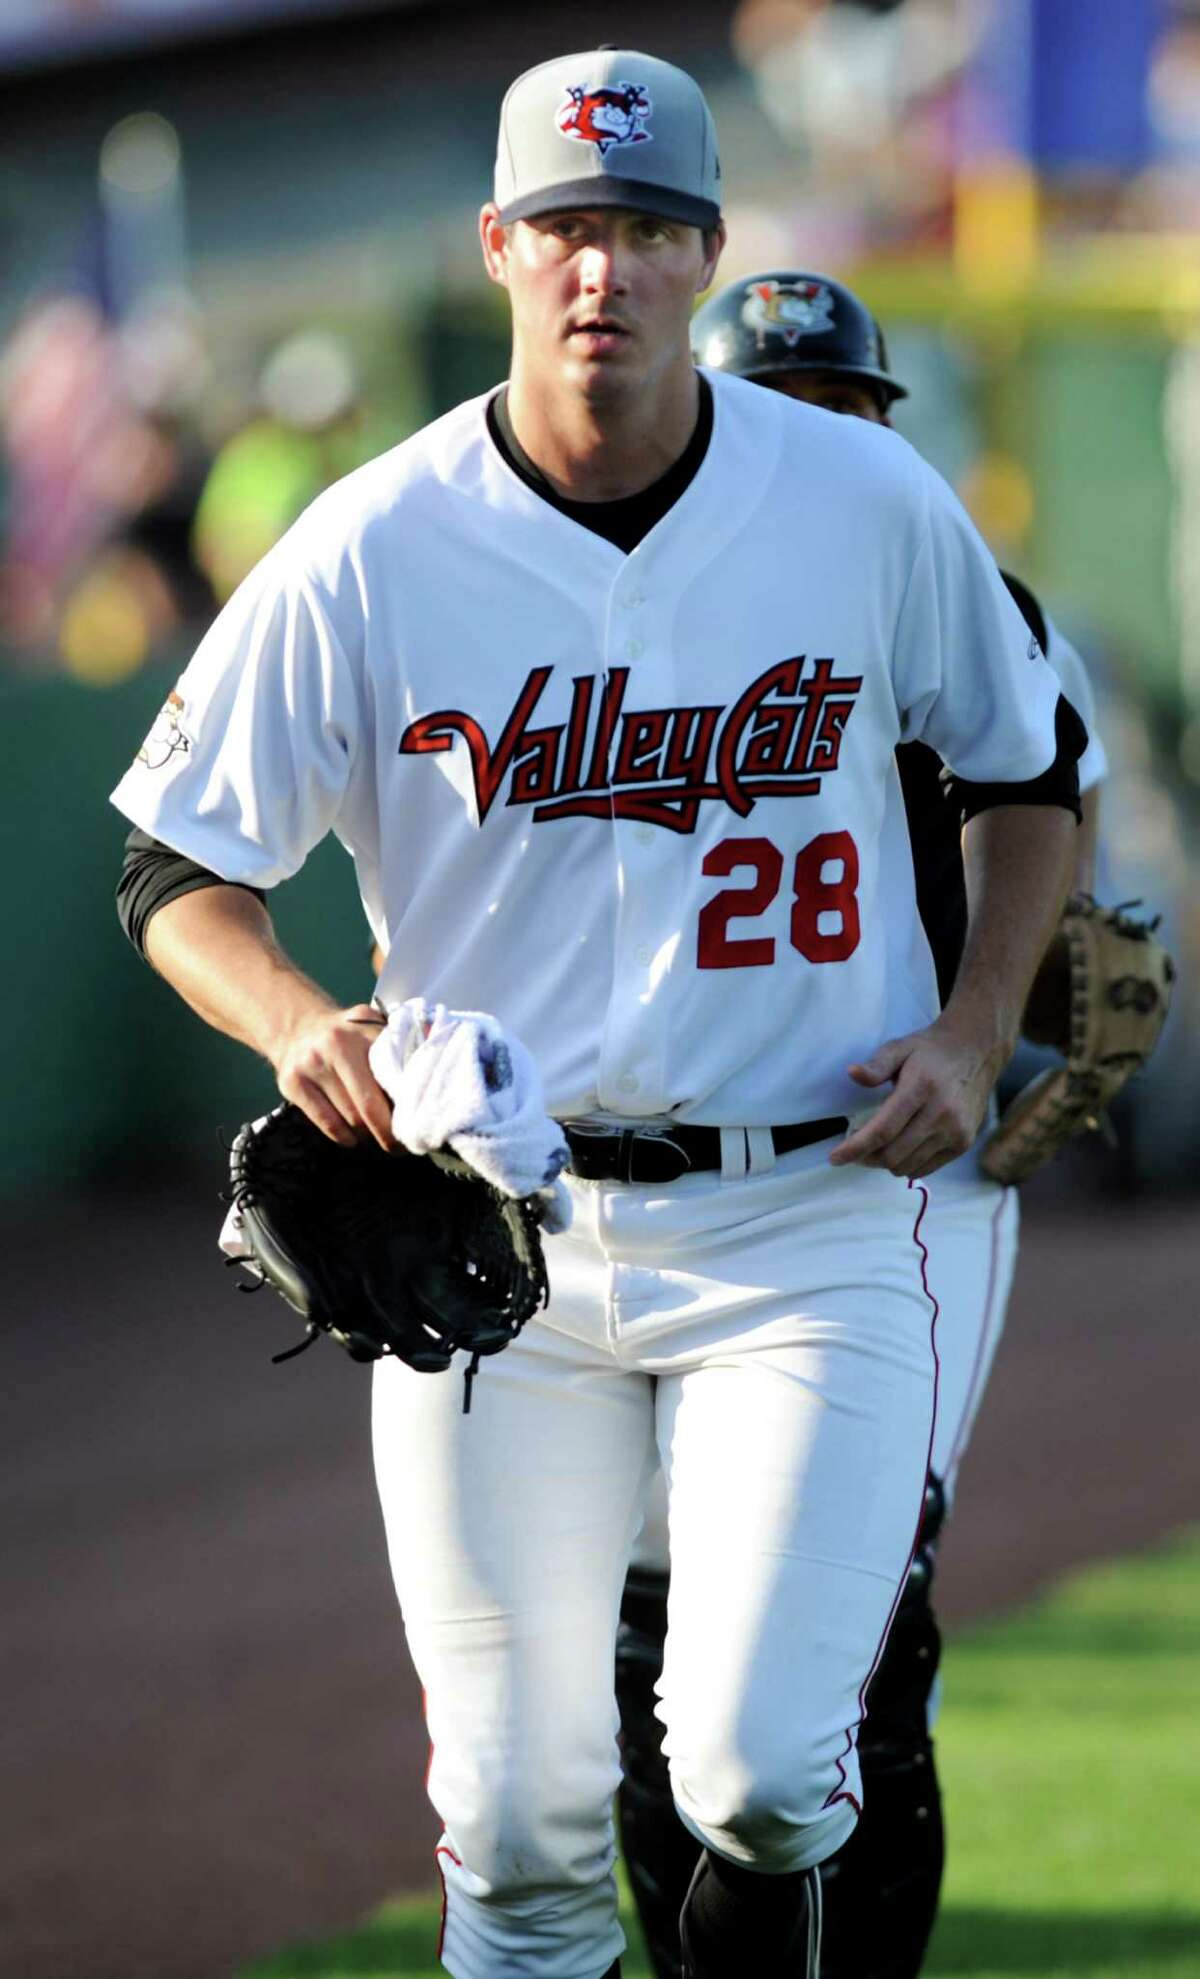 ValleyCats pitcher Mark Appel, the No. 1 draft pick in the 2013 baseball draft, runs onto the field during their game against Lowell Spinners on Friday, July 5, 2013, at Bruno Stadium in Troy, N.Y. (Cindy Schultz / Times Union)